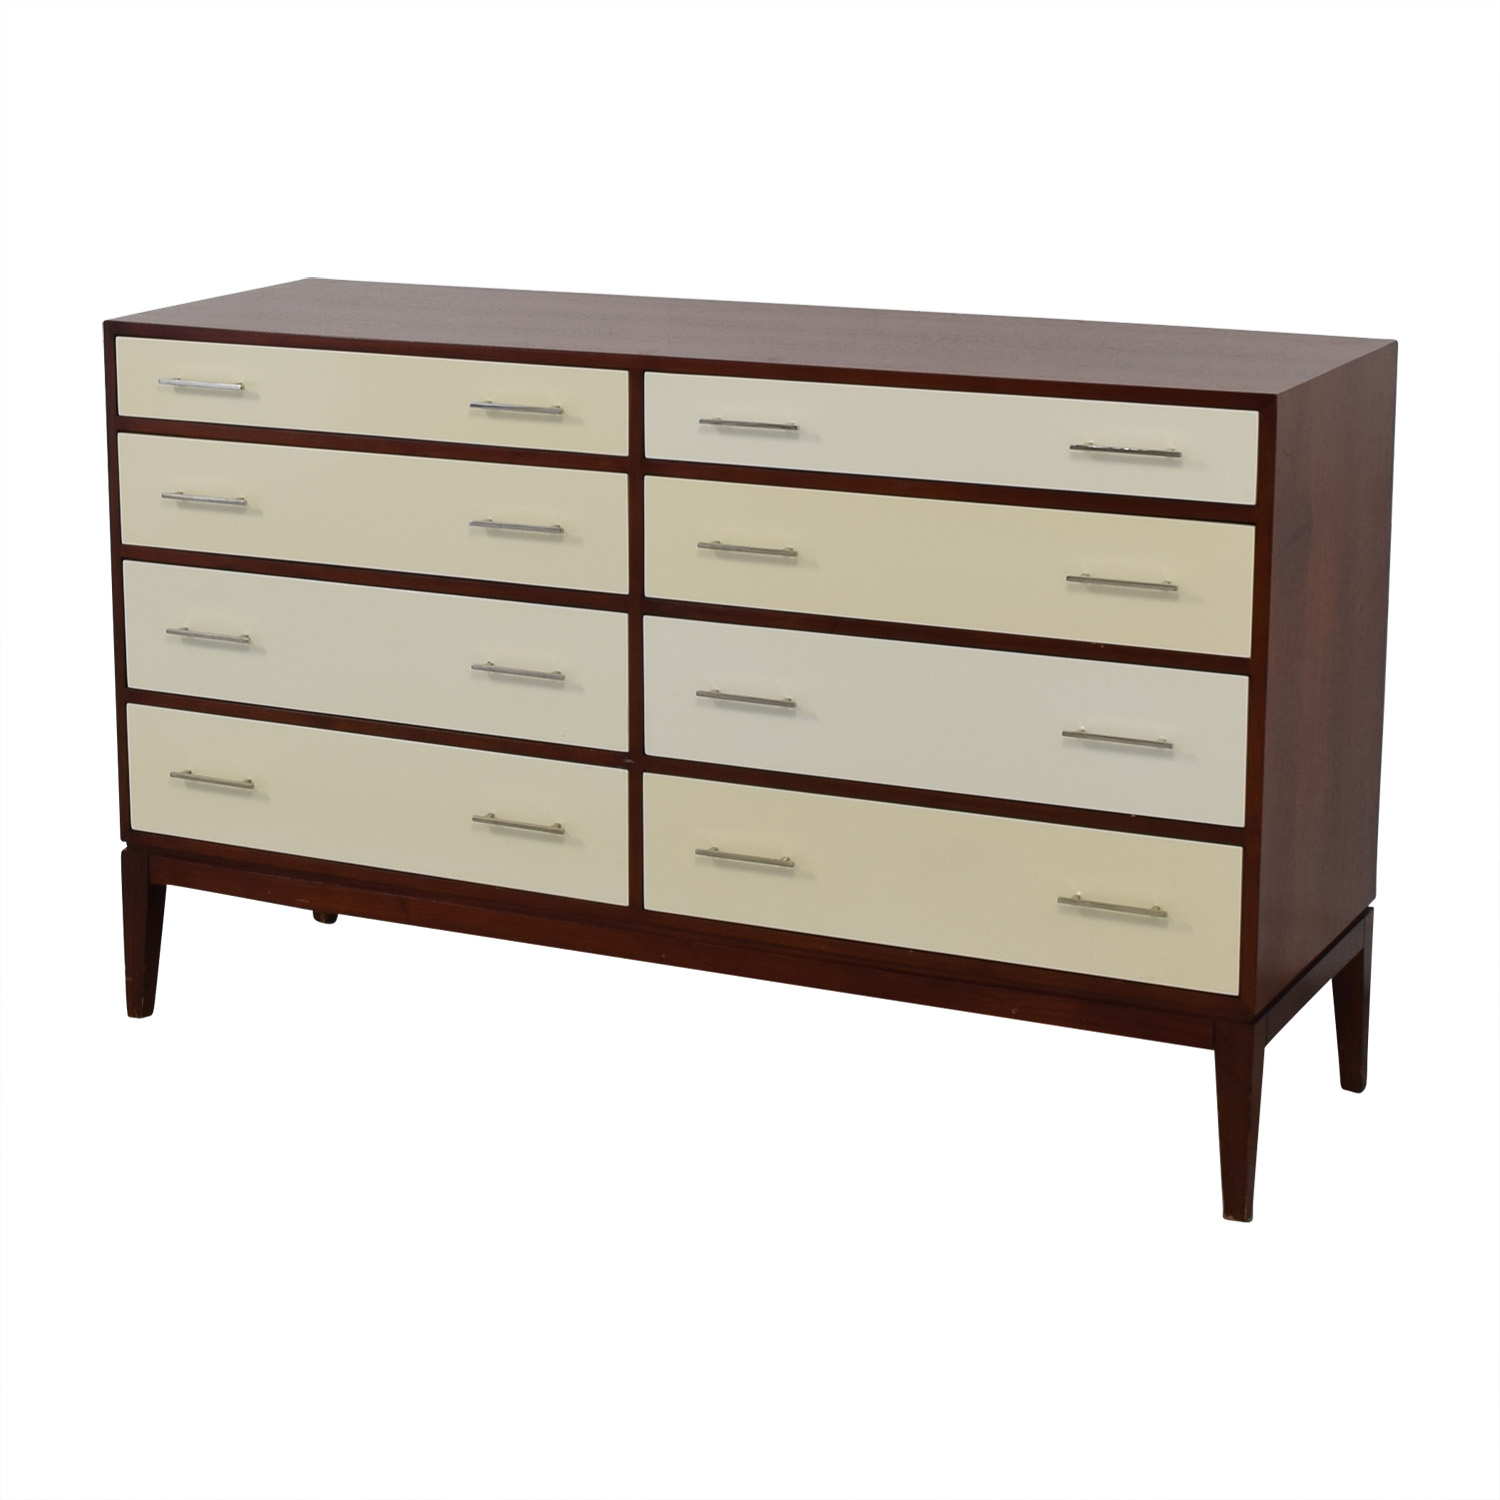 buy Mitchell Gold + Bob Williams 8 Drawer Dresser Mitchell Gold + Bob Williams Dressers